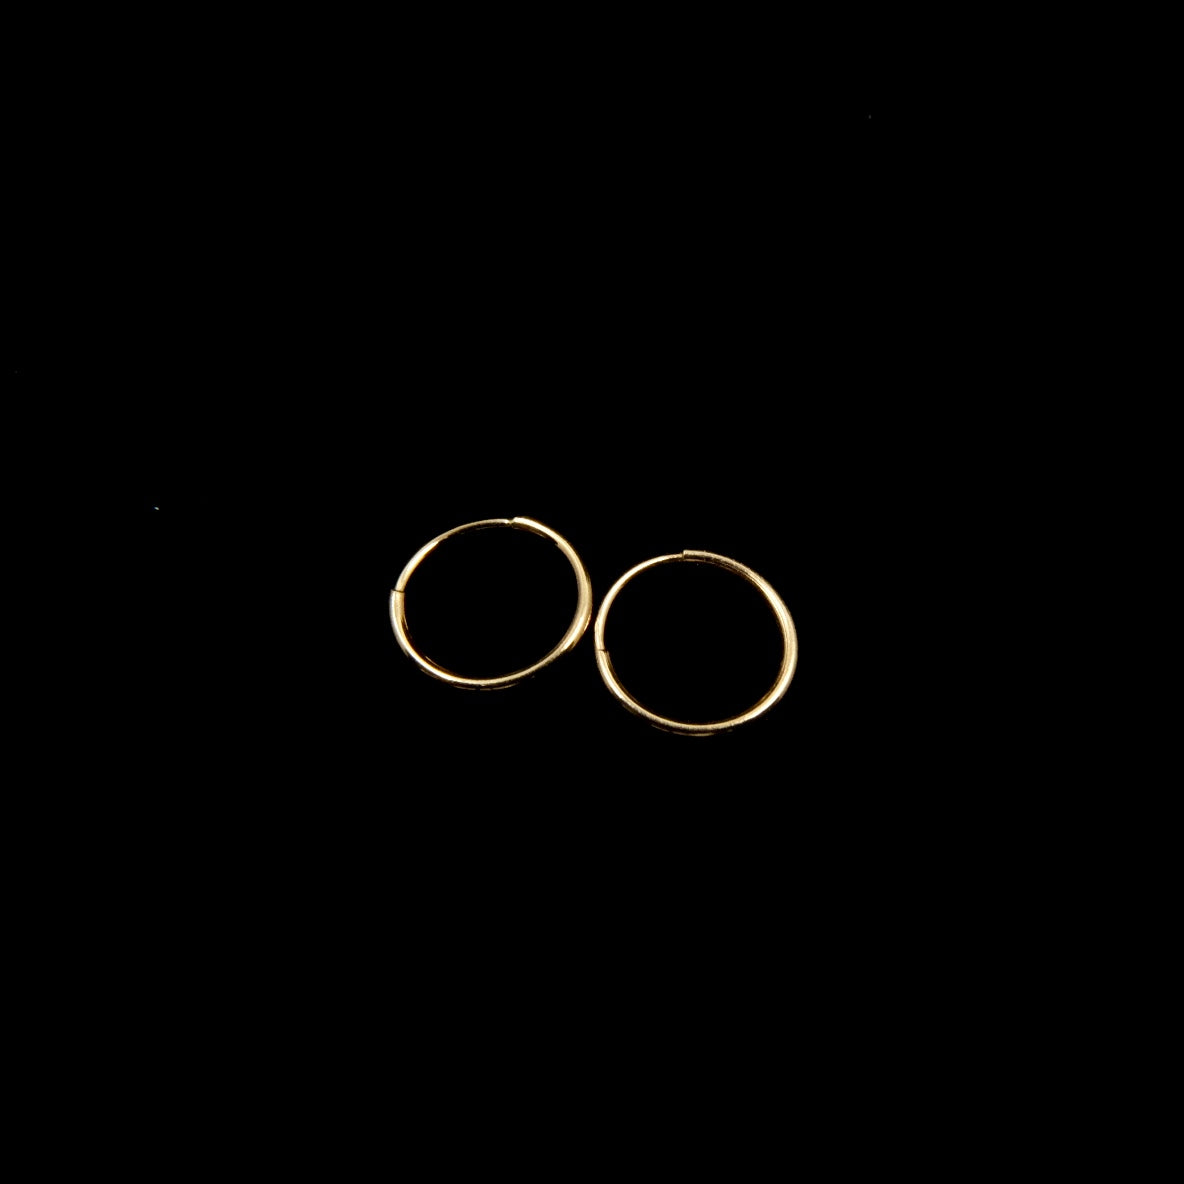 14k Gold Endless Hoops